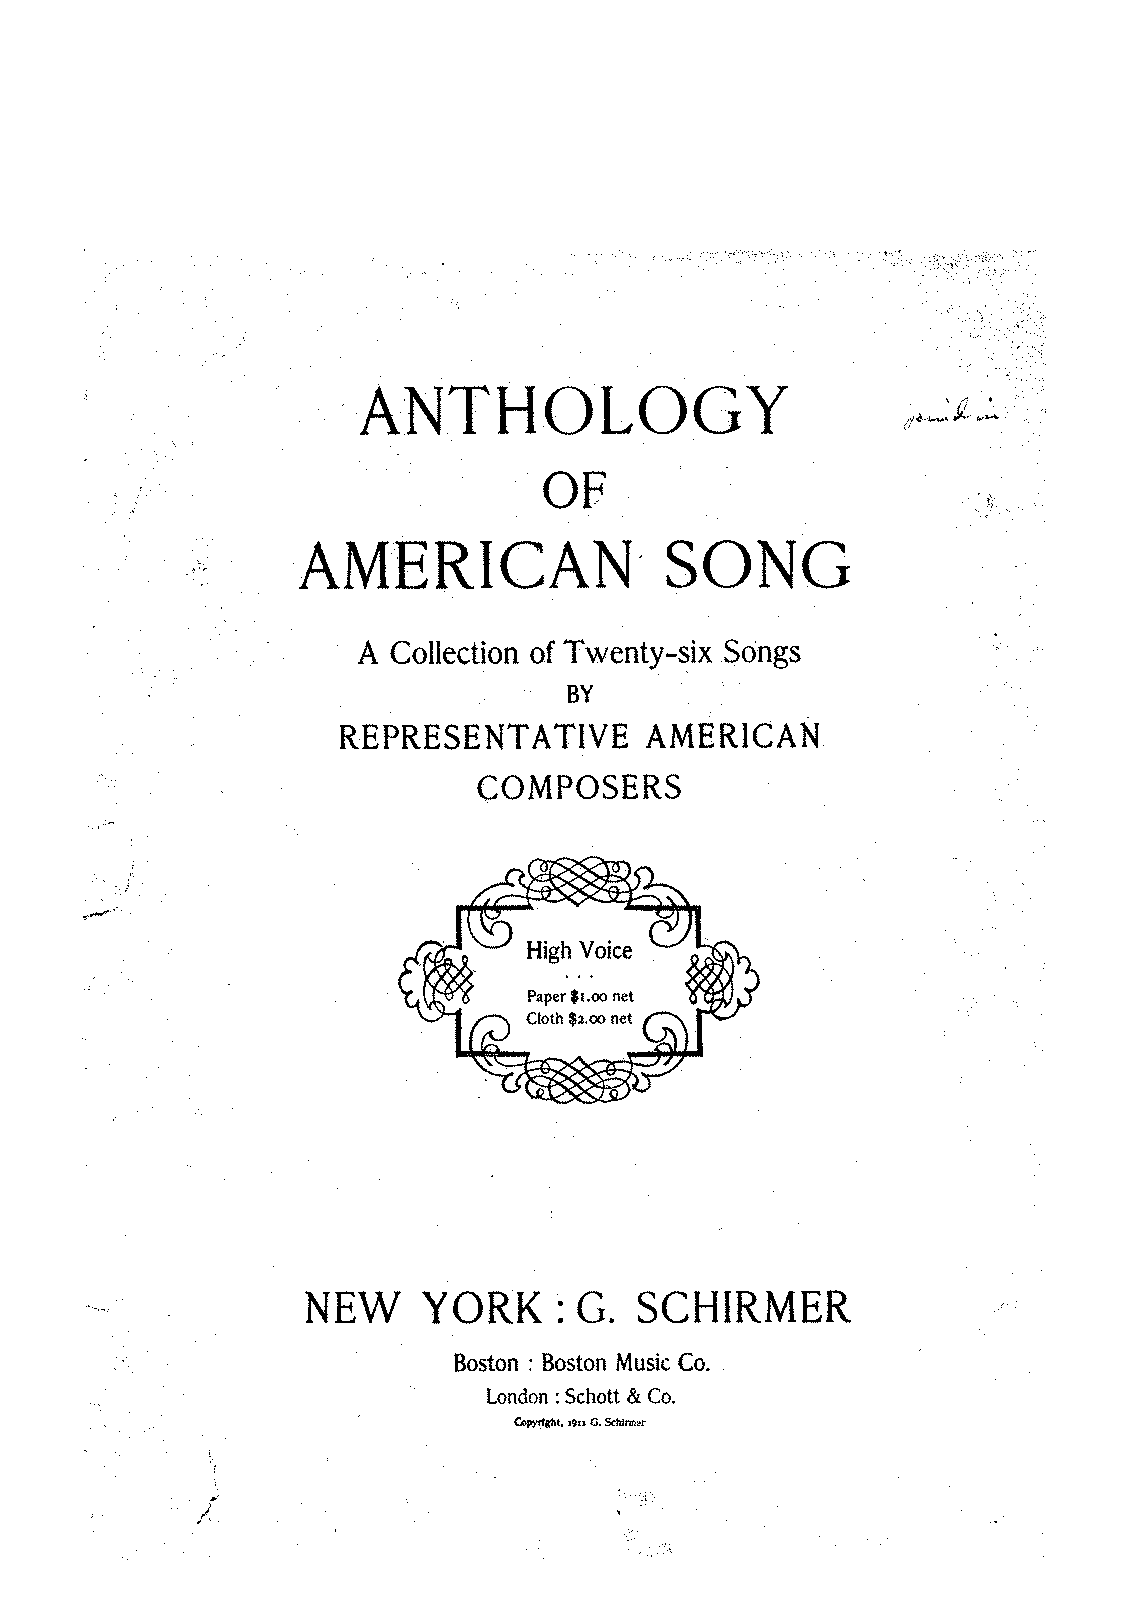 HELP! I need to find a source information for this anthology.?